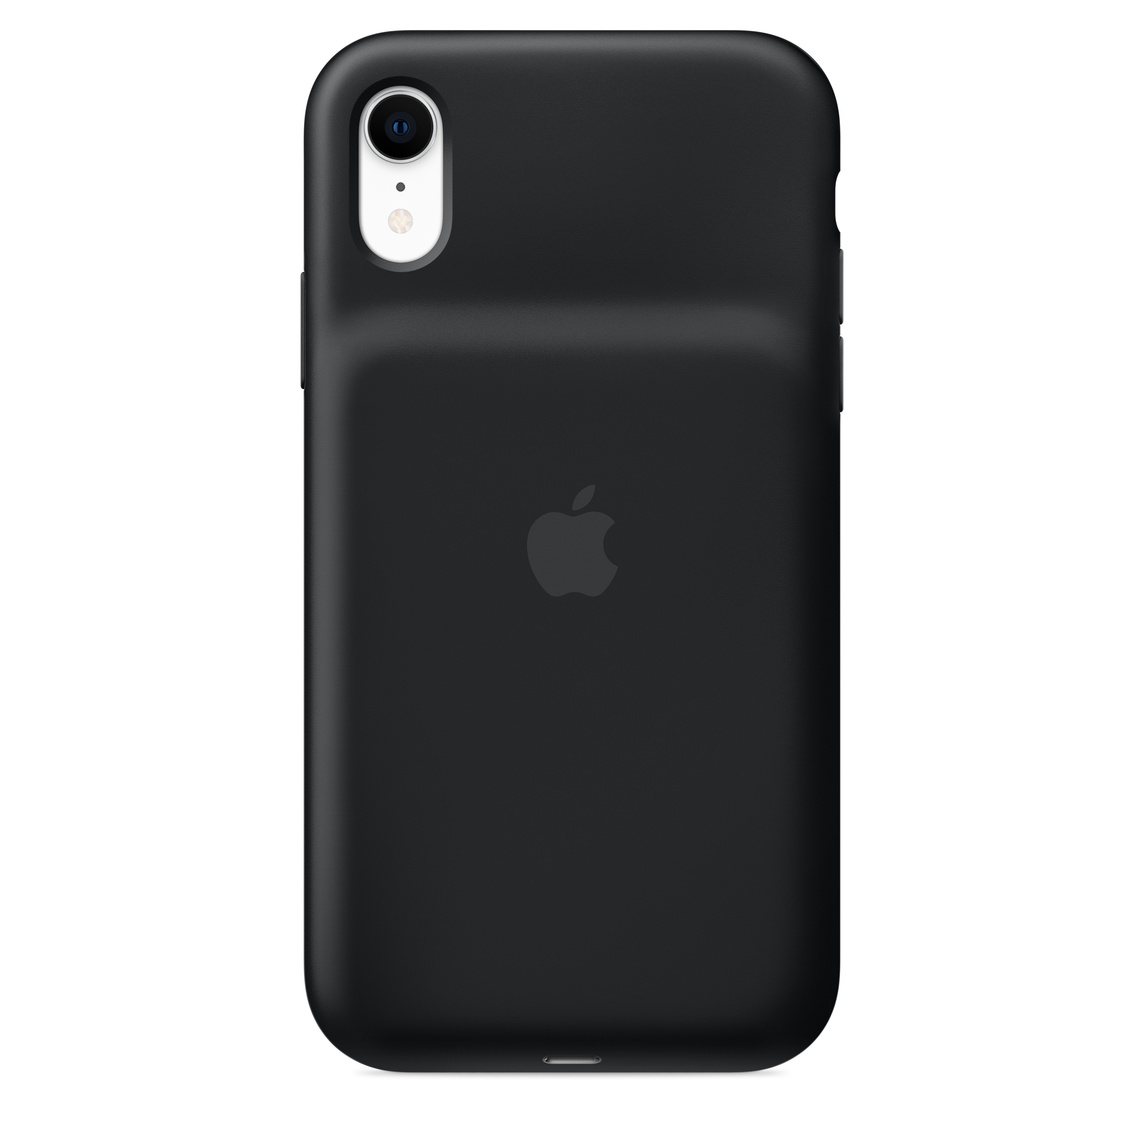 sale retailer 61f6d 57eb5 iPhone XR Smart Battery Case - Black - Apple (AE)